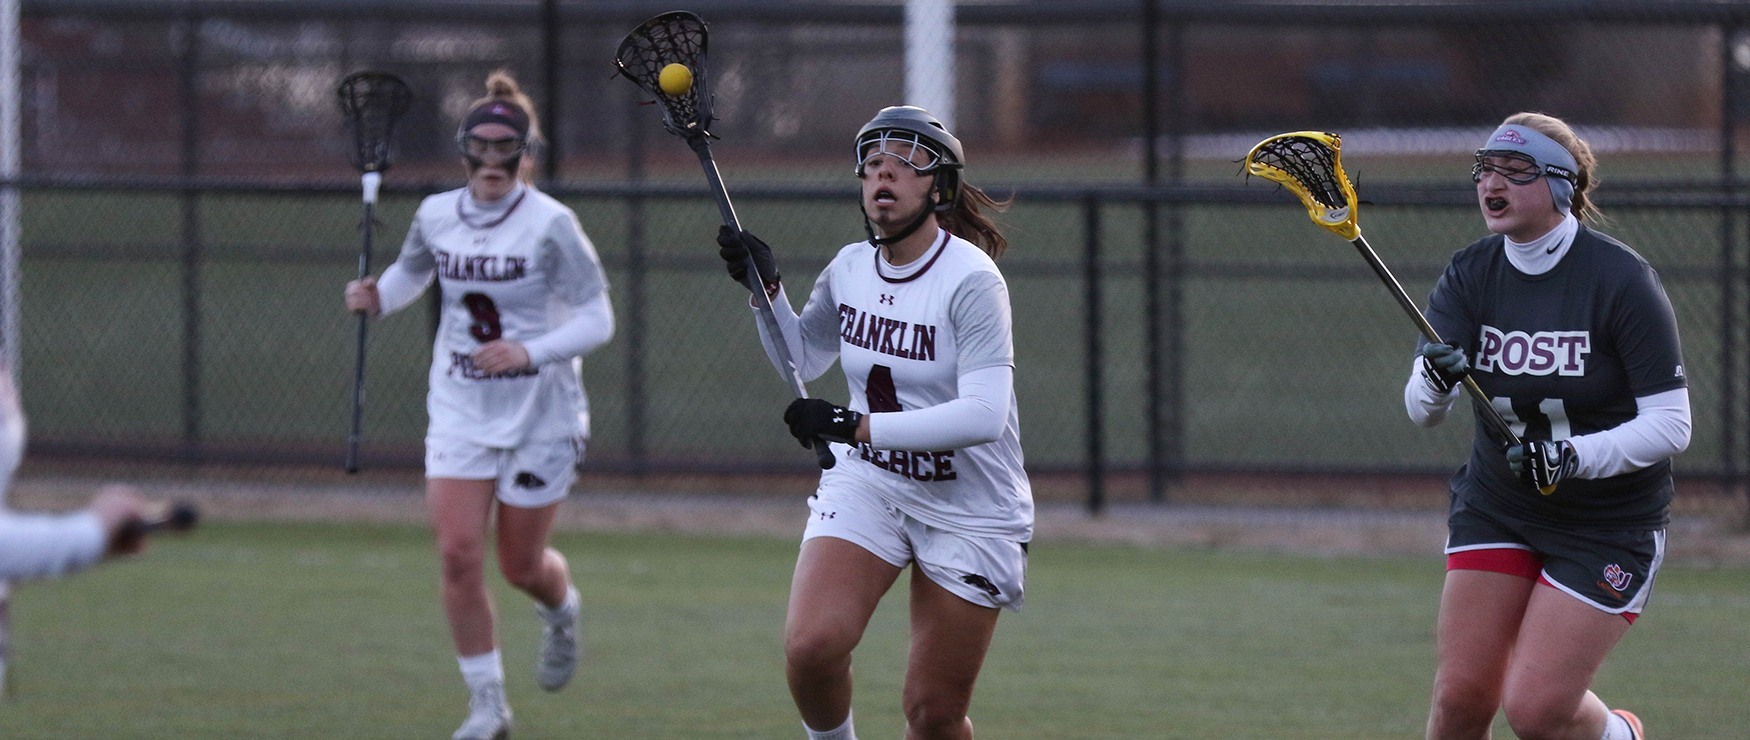 Women's Lacrosse Ices SNHU in Second Half on Way to 18-12 Win